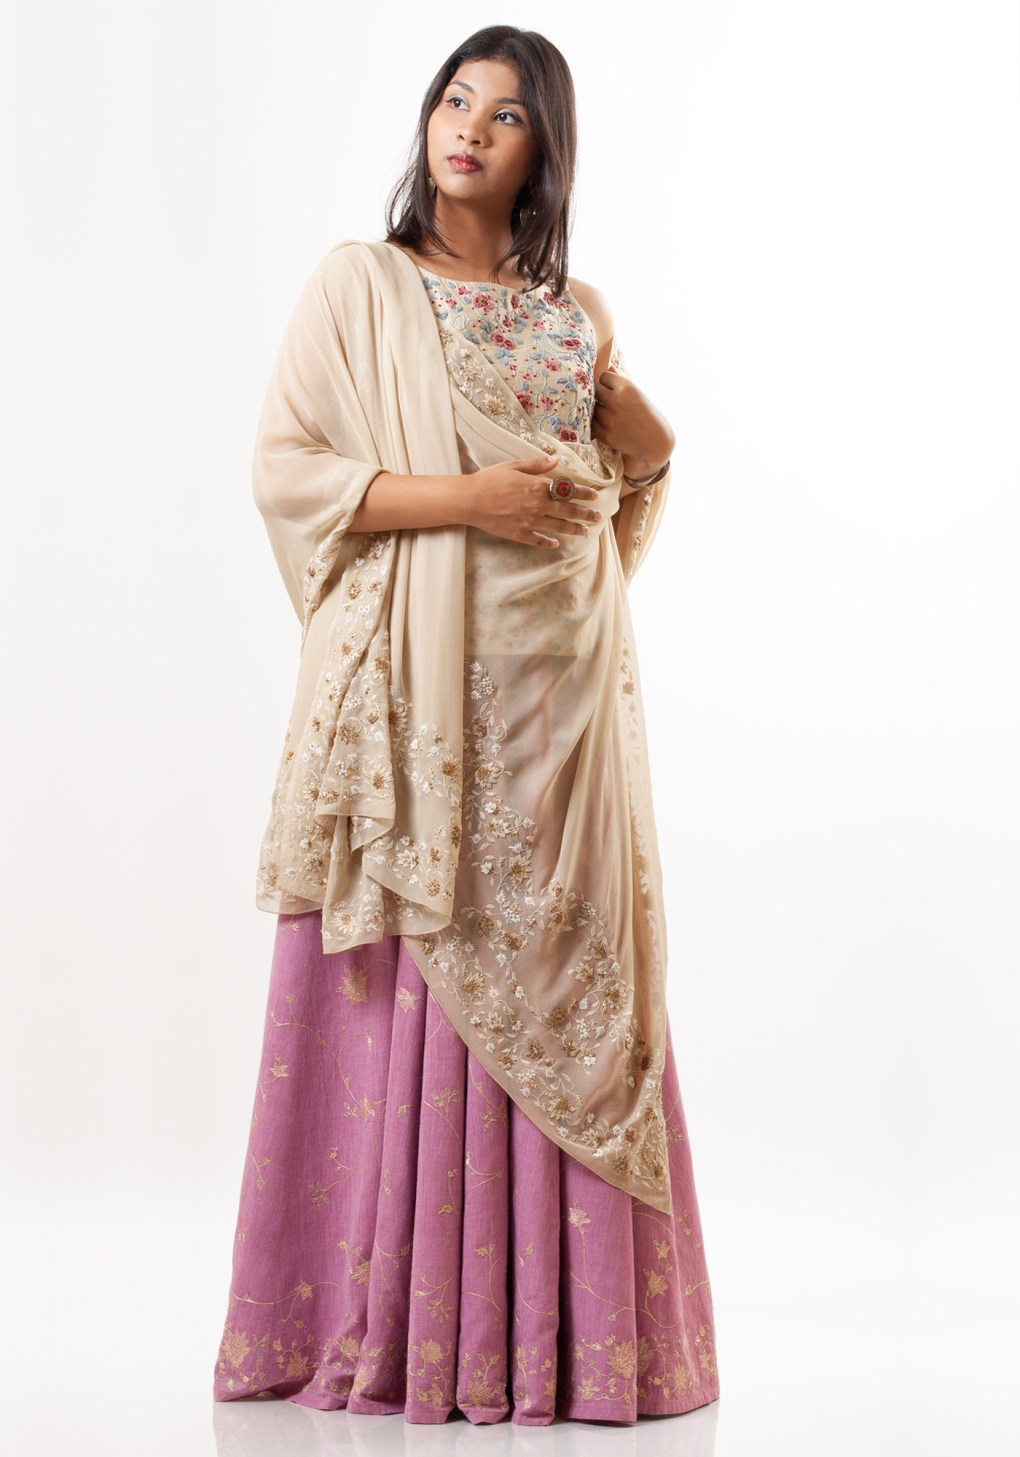 MINC Hand Embroidered Dupatta in Beige Silk Georgette